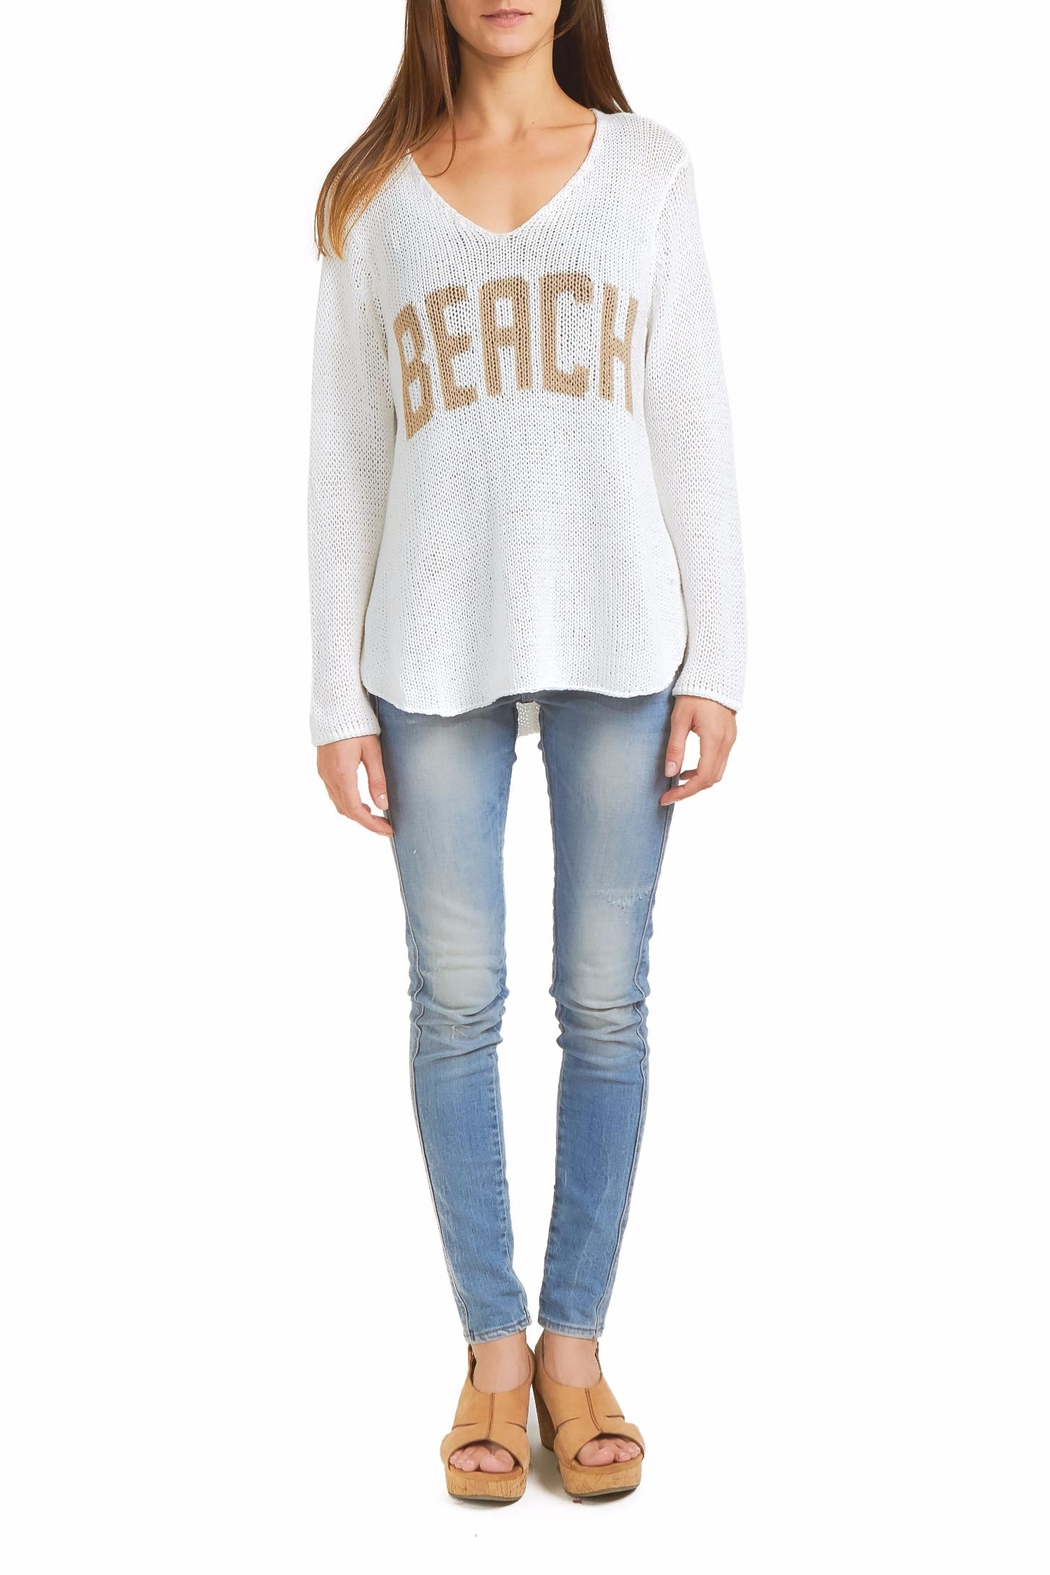 Wooden Ships Beach Sweater Top - Front Cropped Image